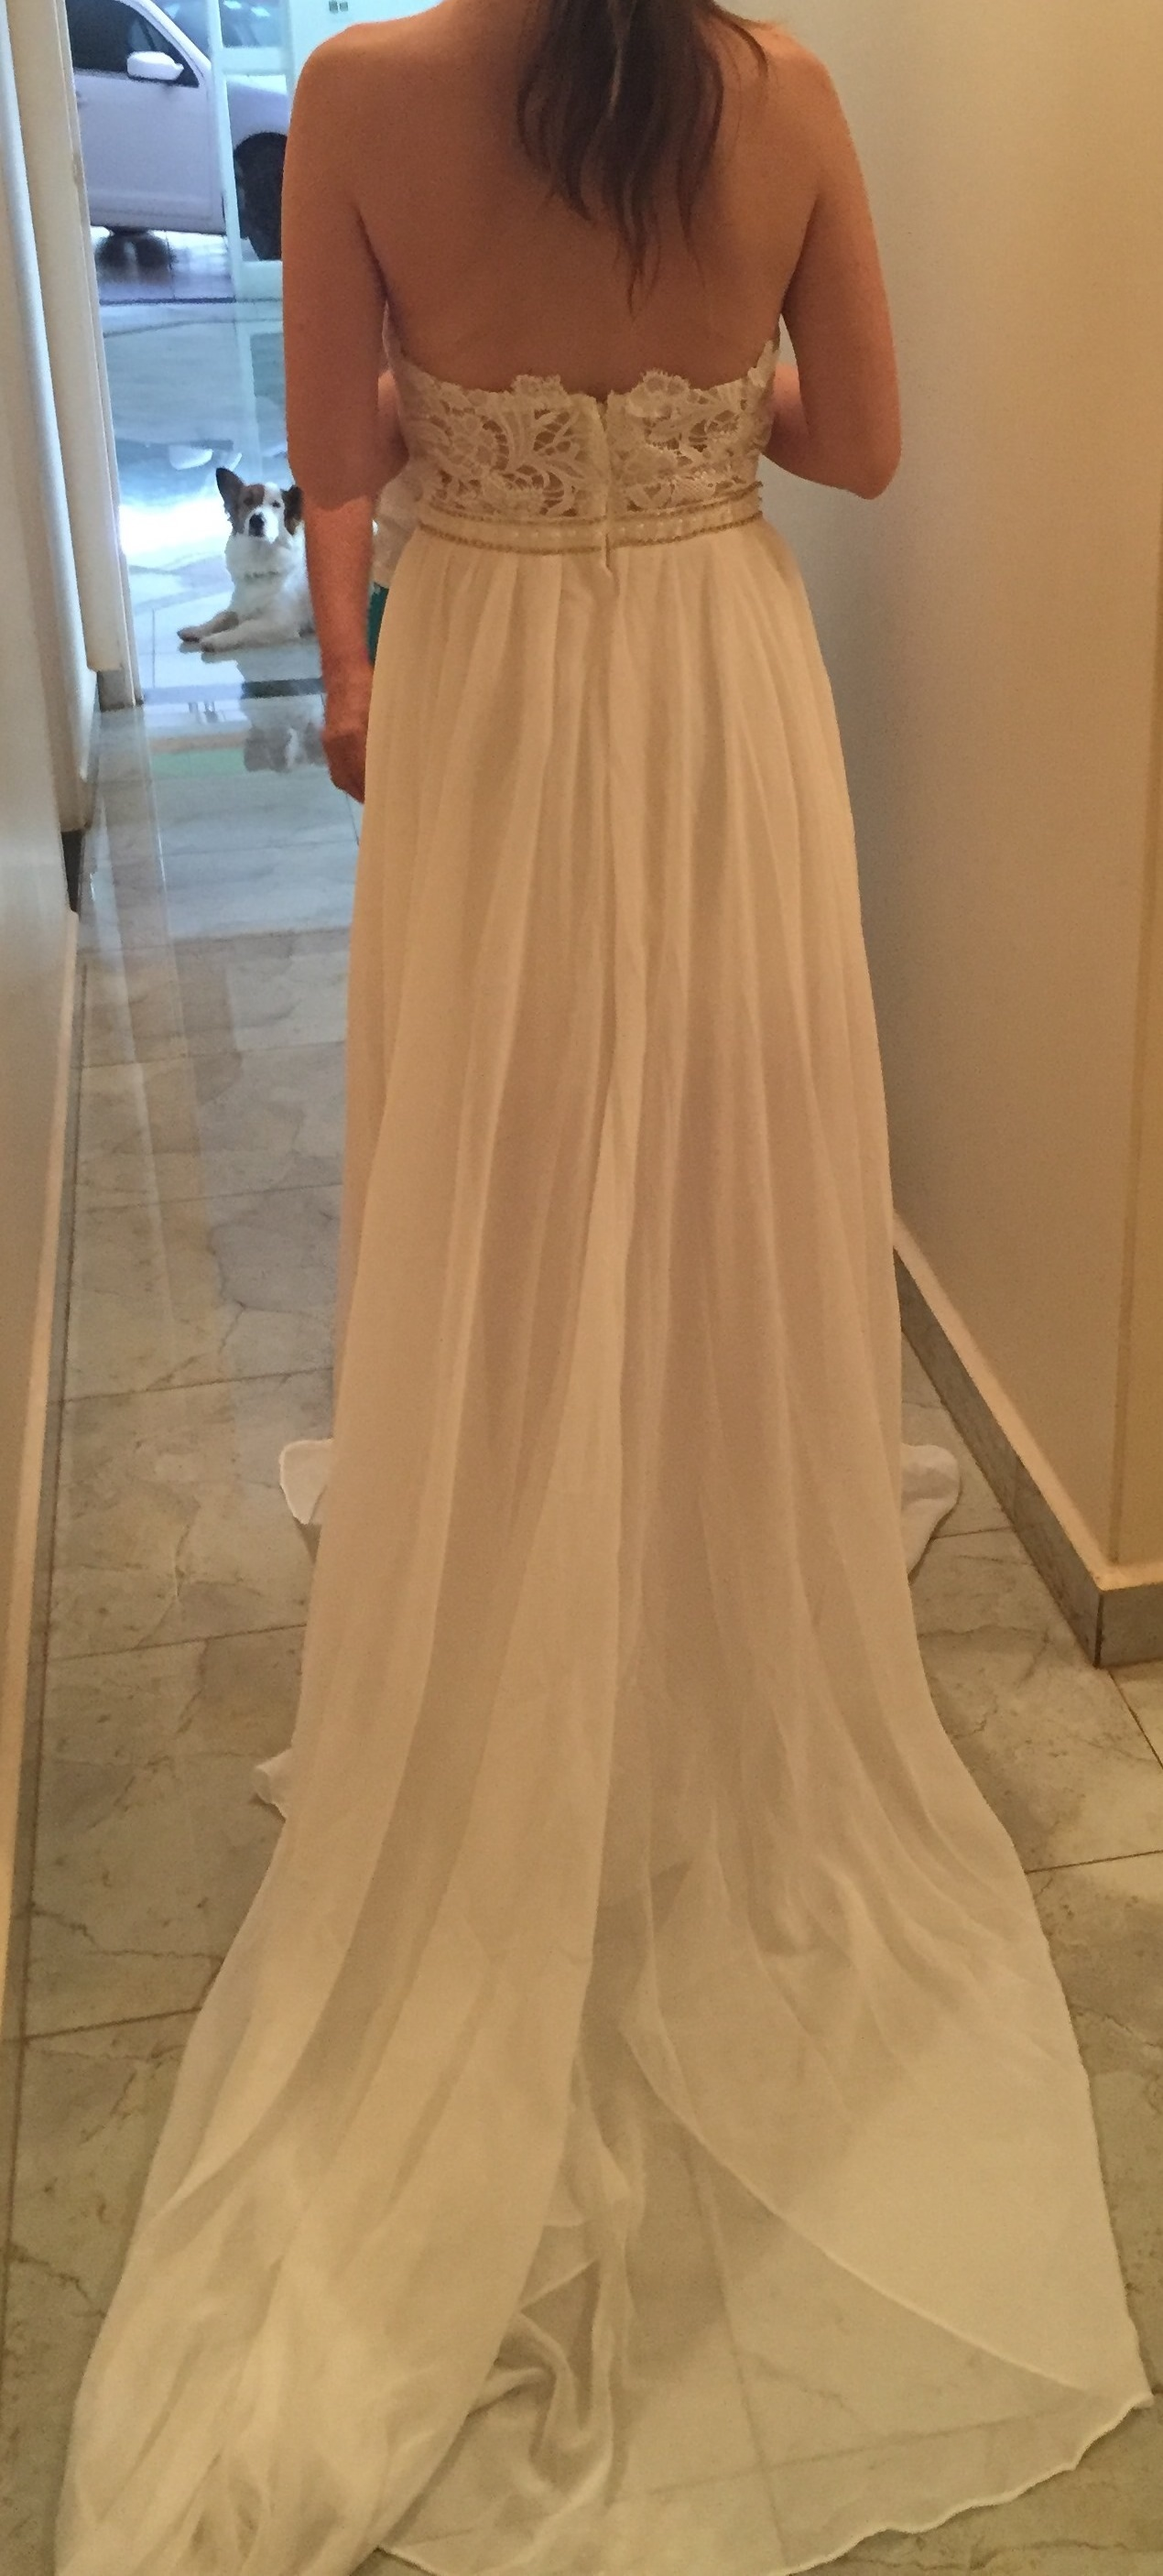 Wedding Dresses For Large Sizes – So It Fits Perfectly